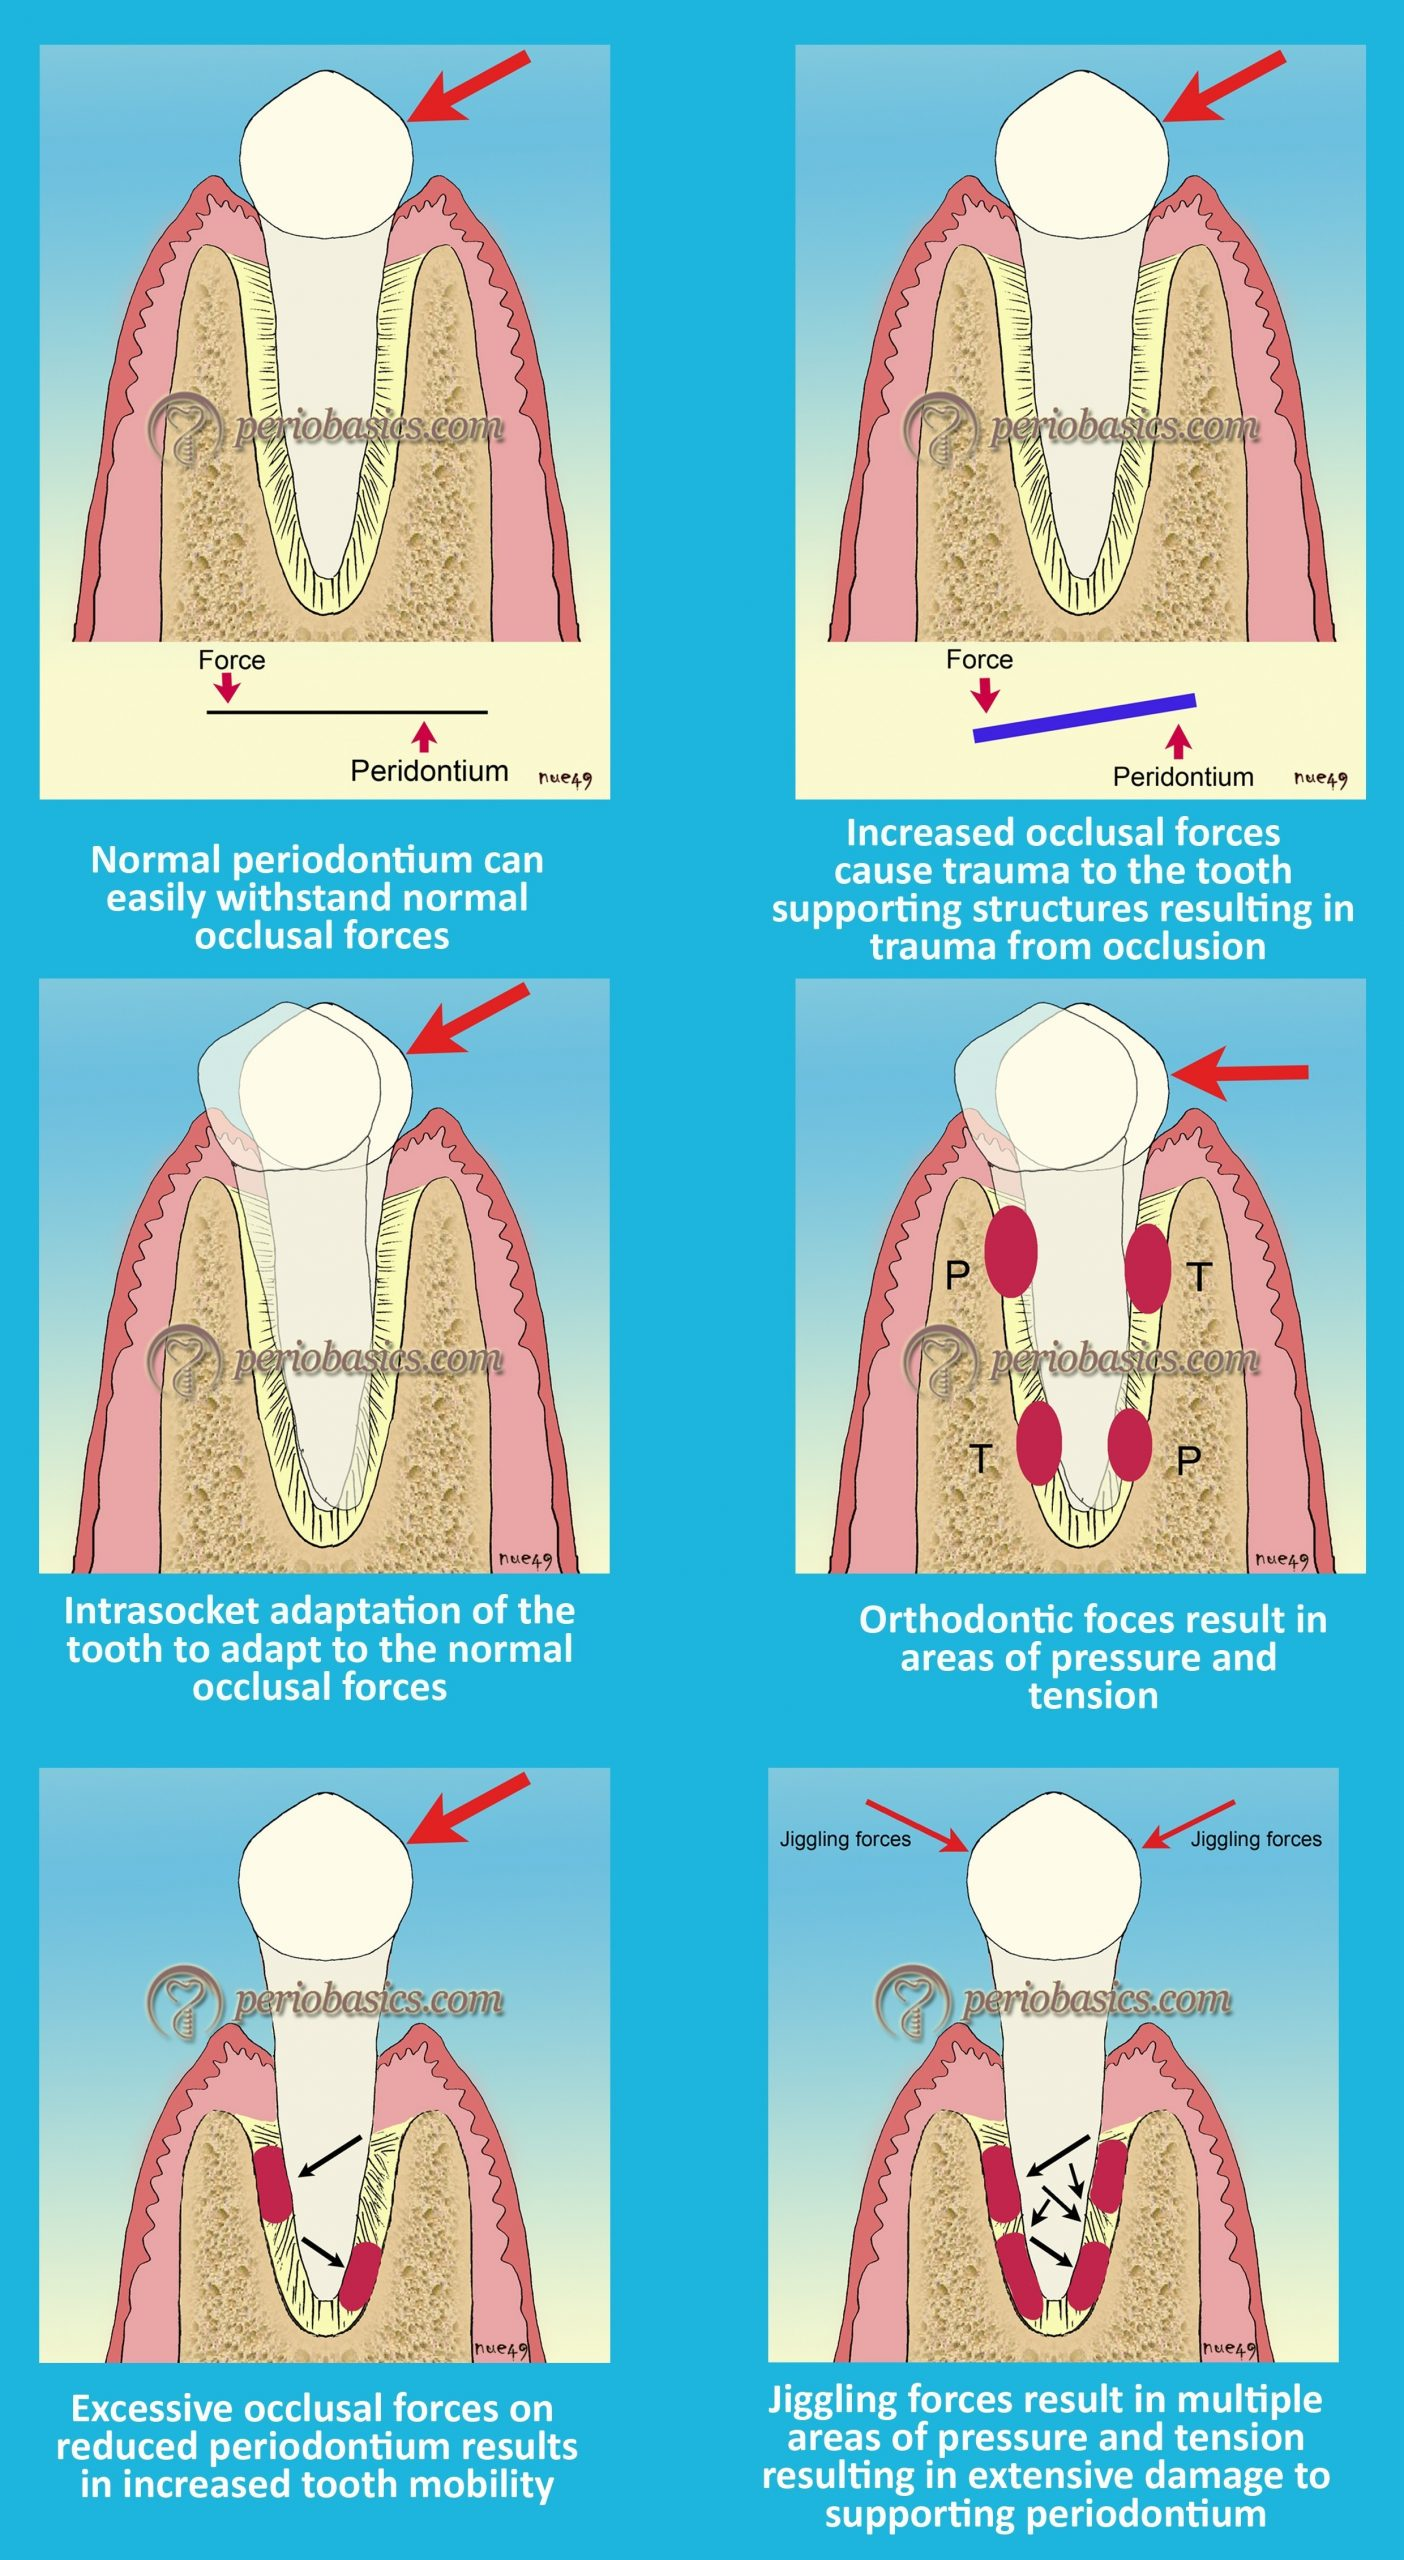 Effect of excessive occlusal forces on periodontium